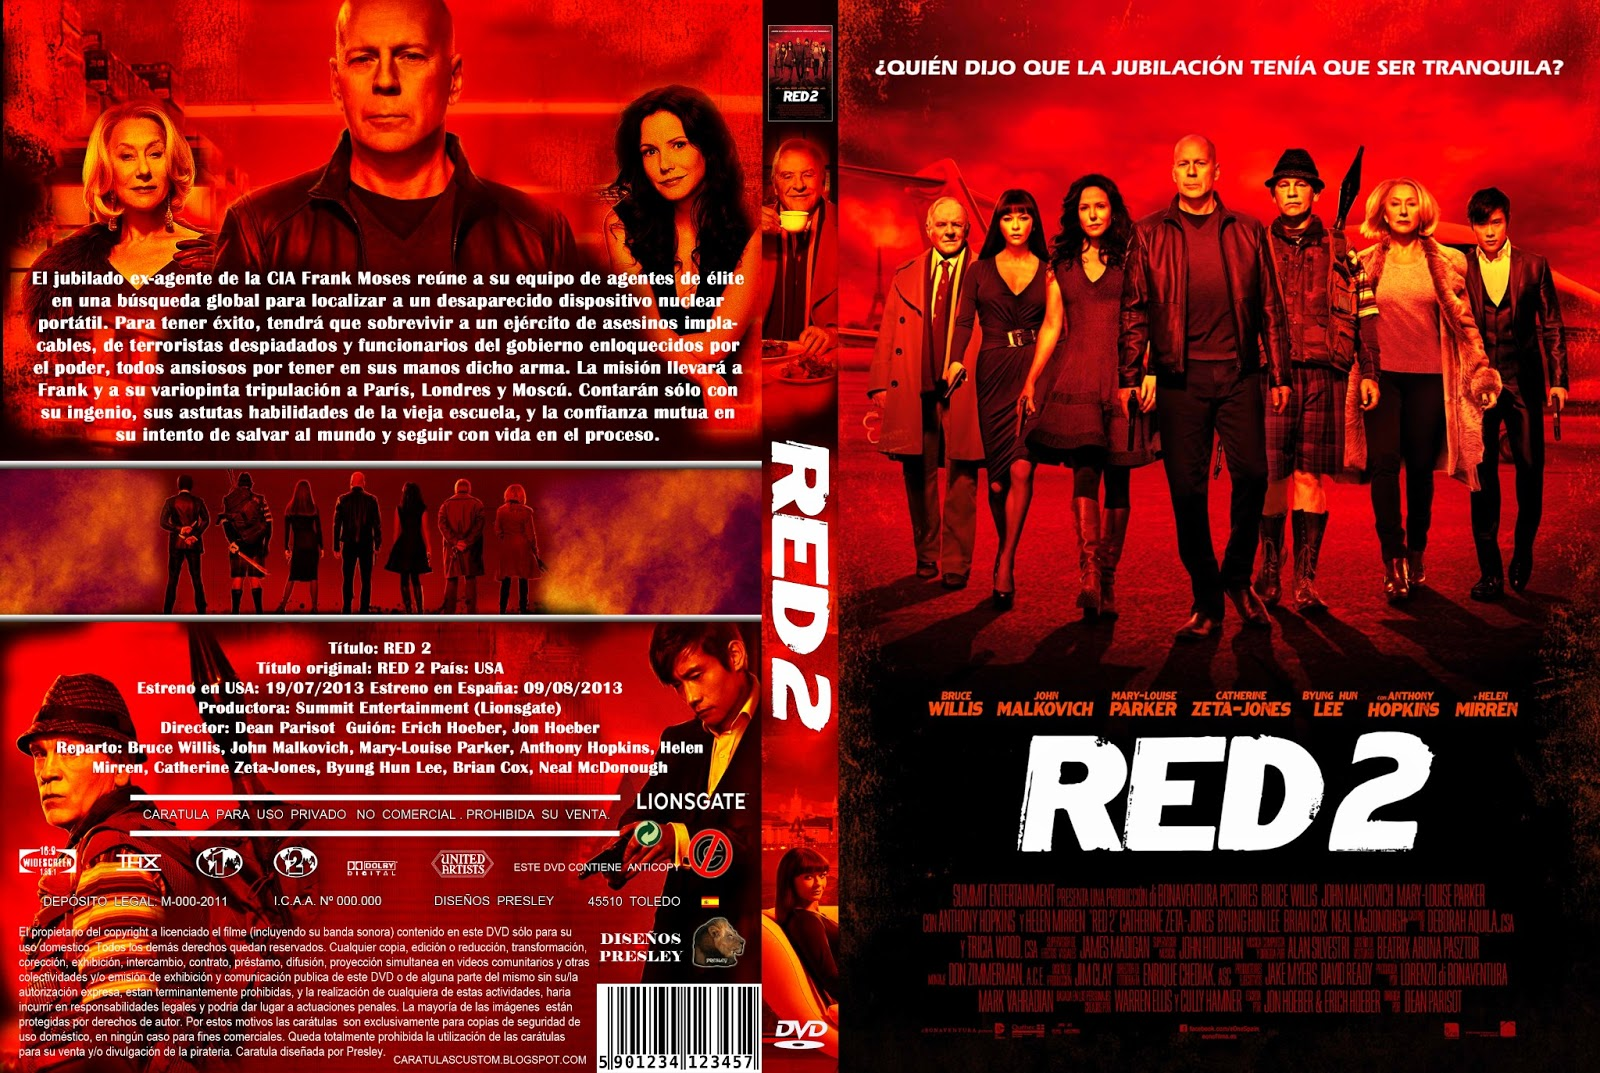 Red 2 (2013) [Dvdrip Latino] [Zippyshare]